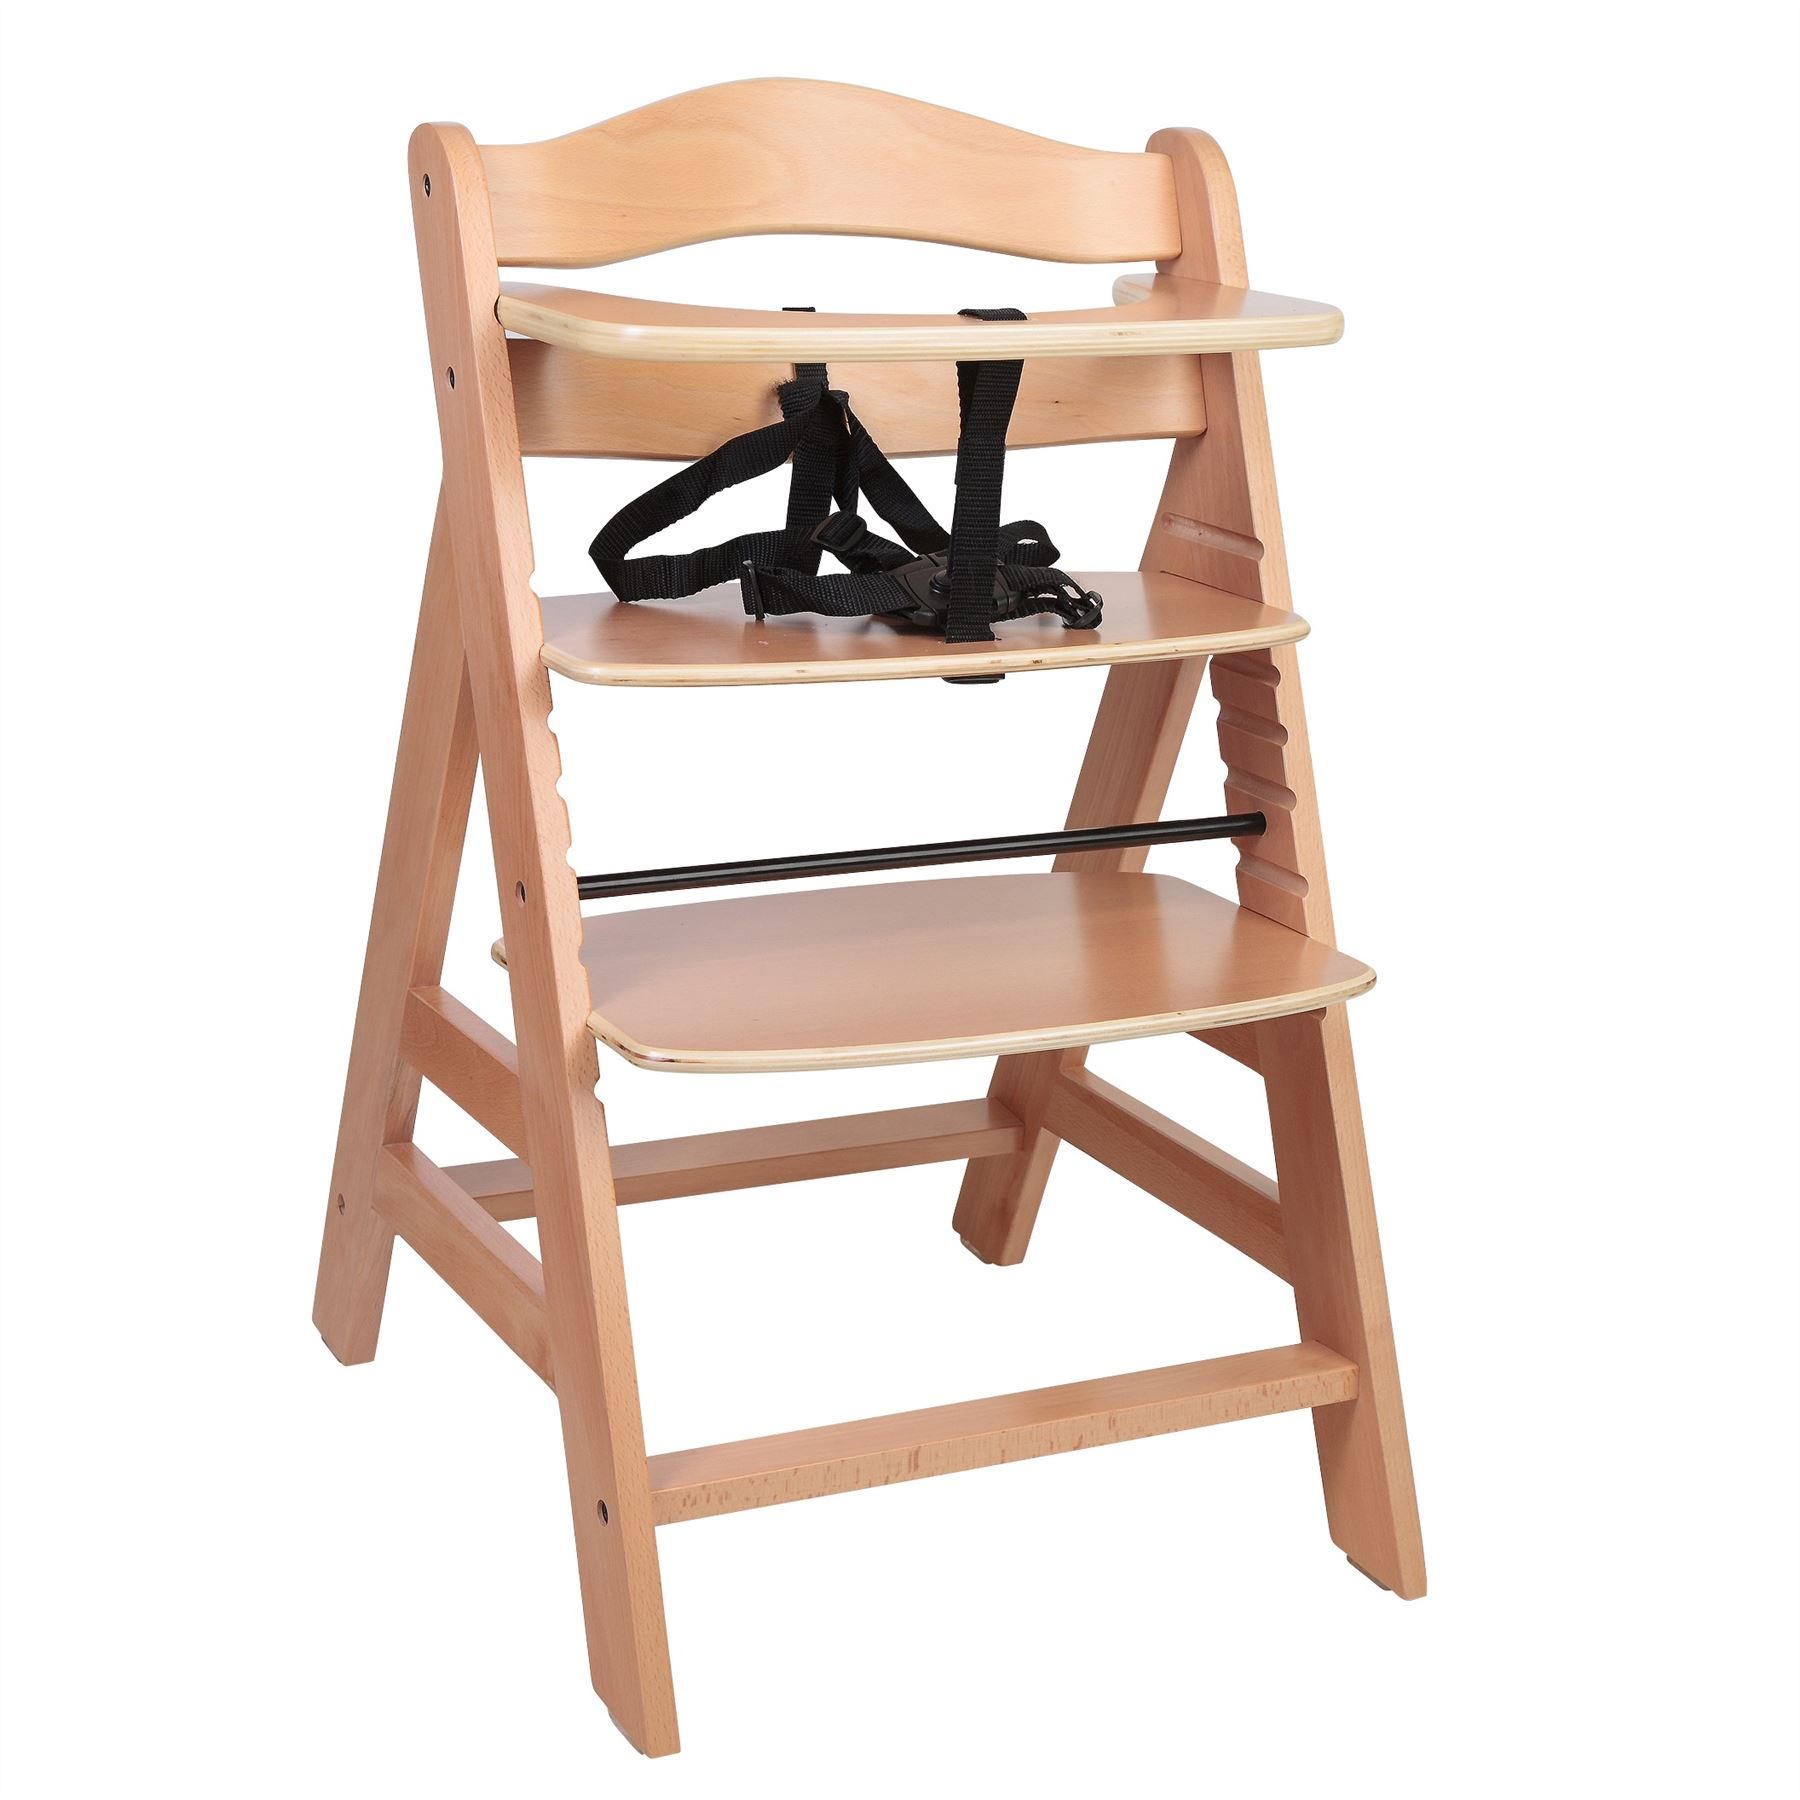 Safetots A Frame Multi Height High chair Premium Wooden ...